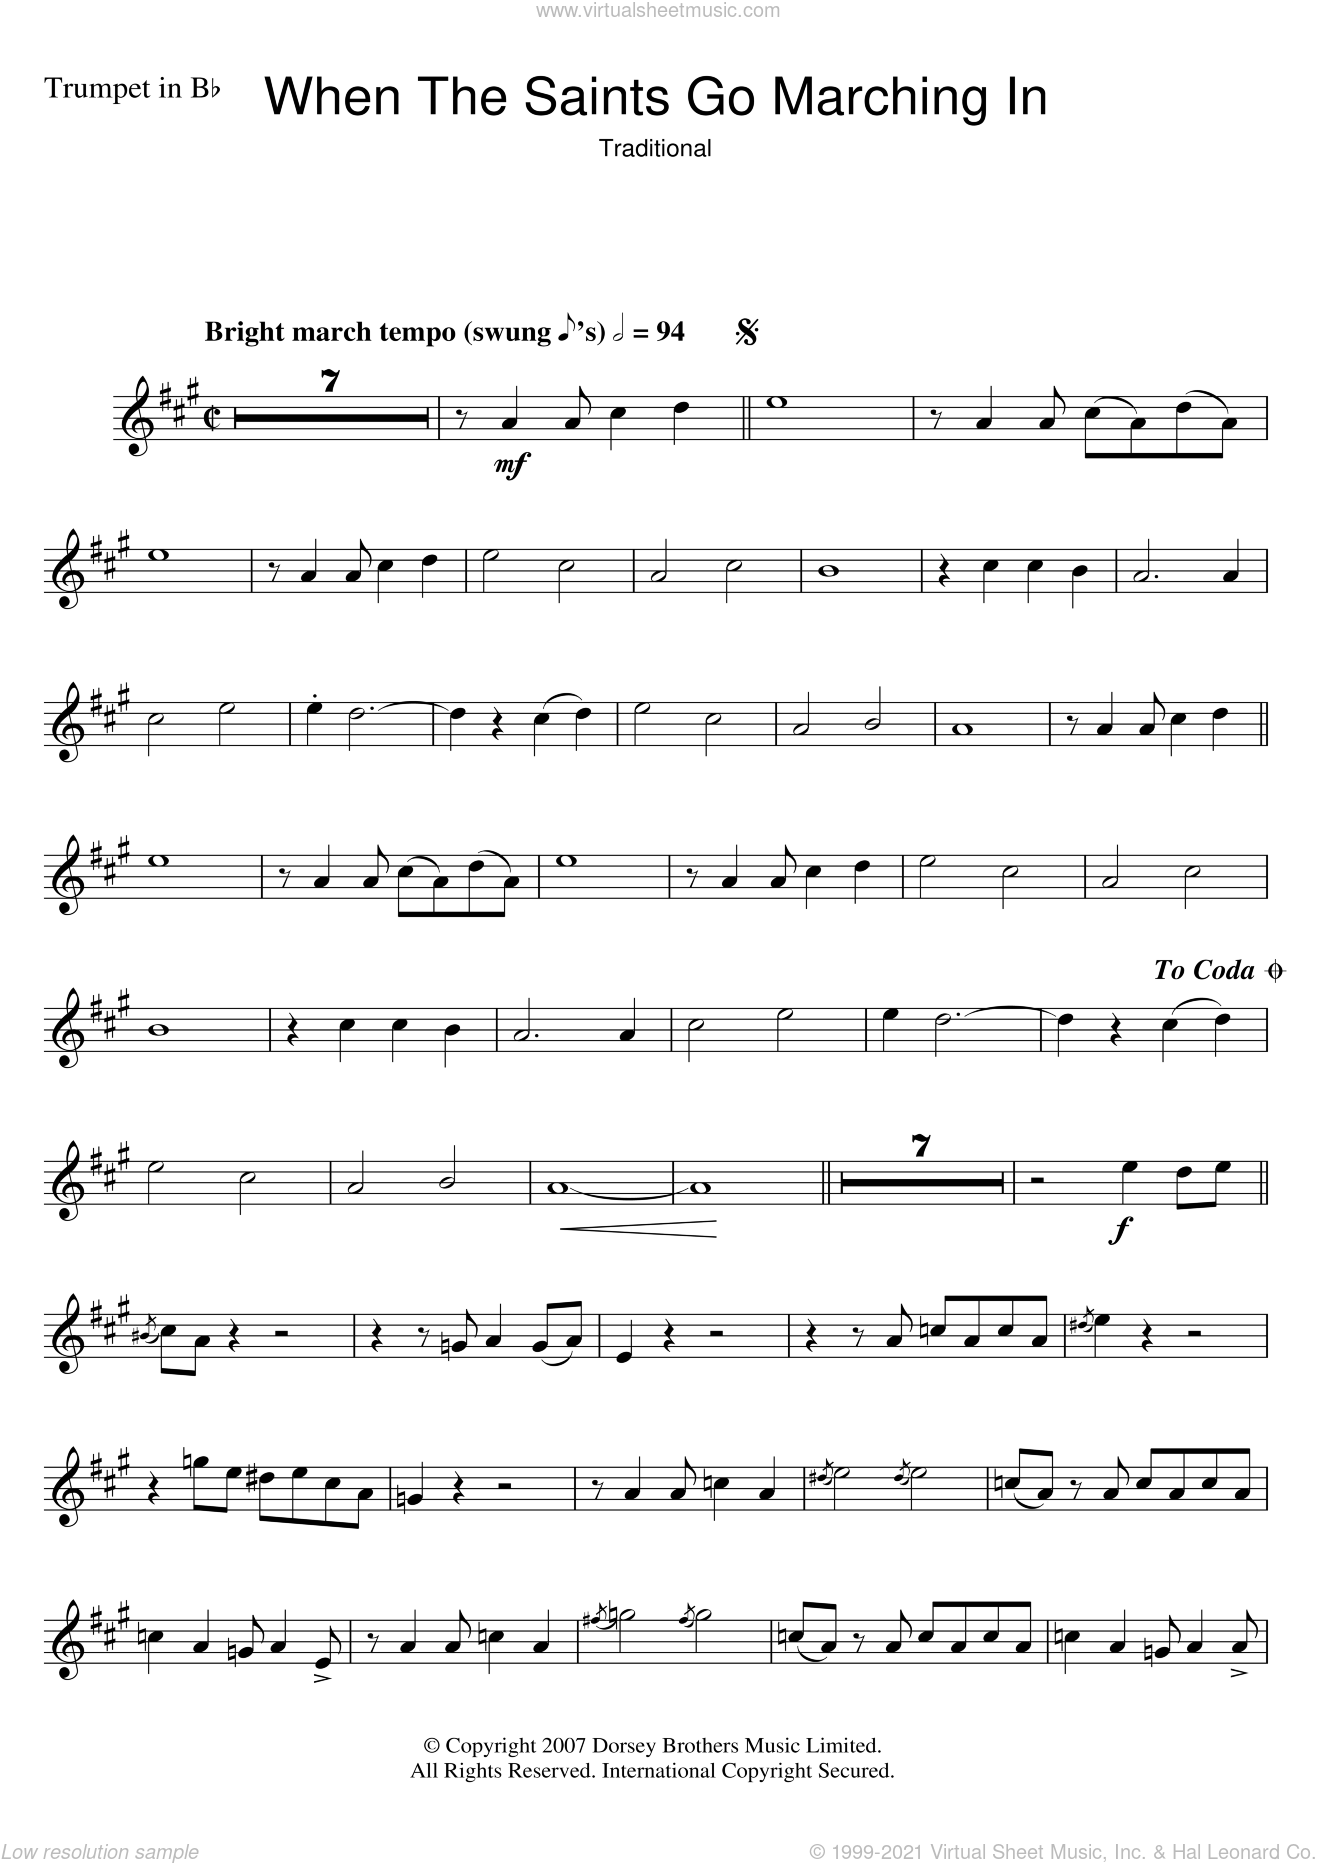 When The Saints Go Marching In sheet music for trumpet solo by Louis Armstrong and Miscellaneous, intermediate skill level